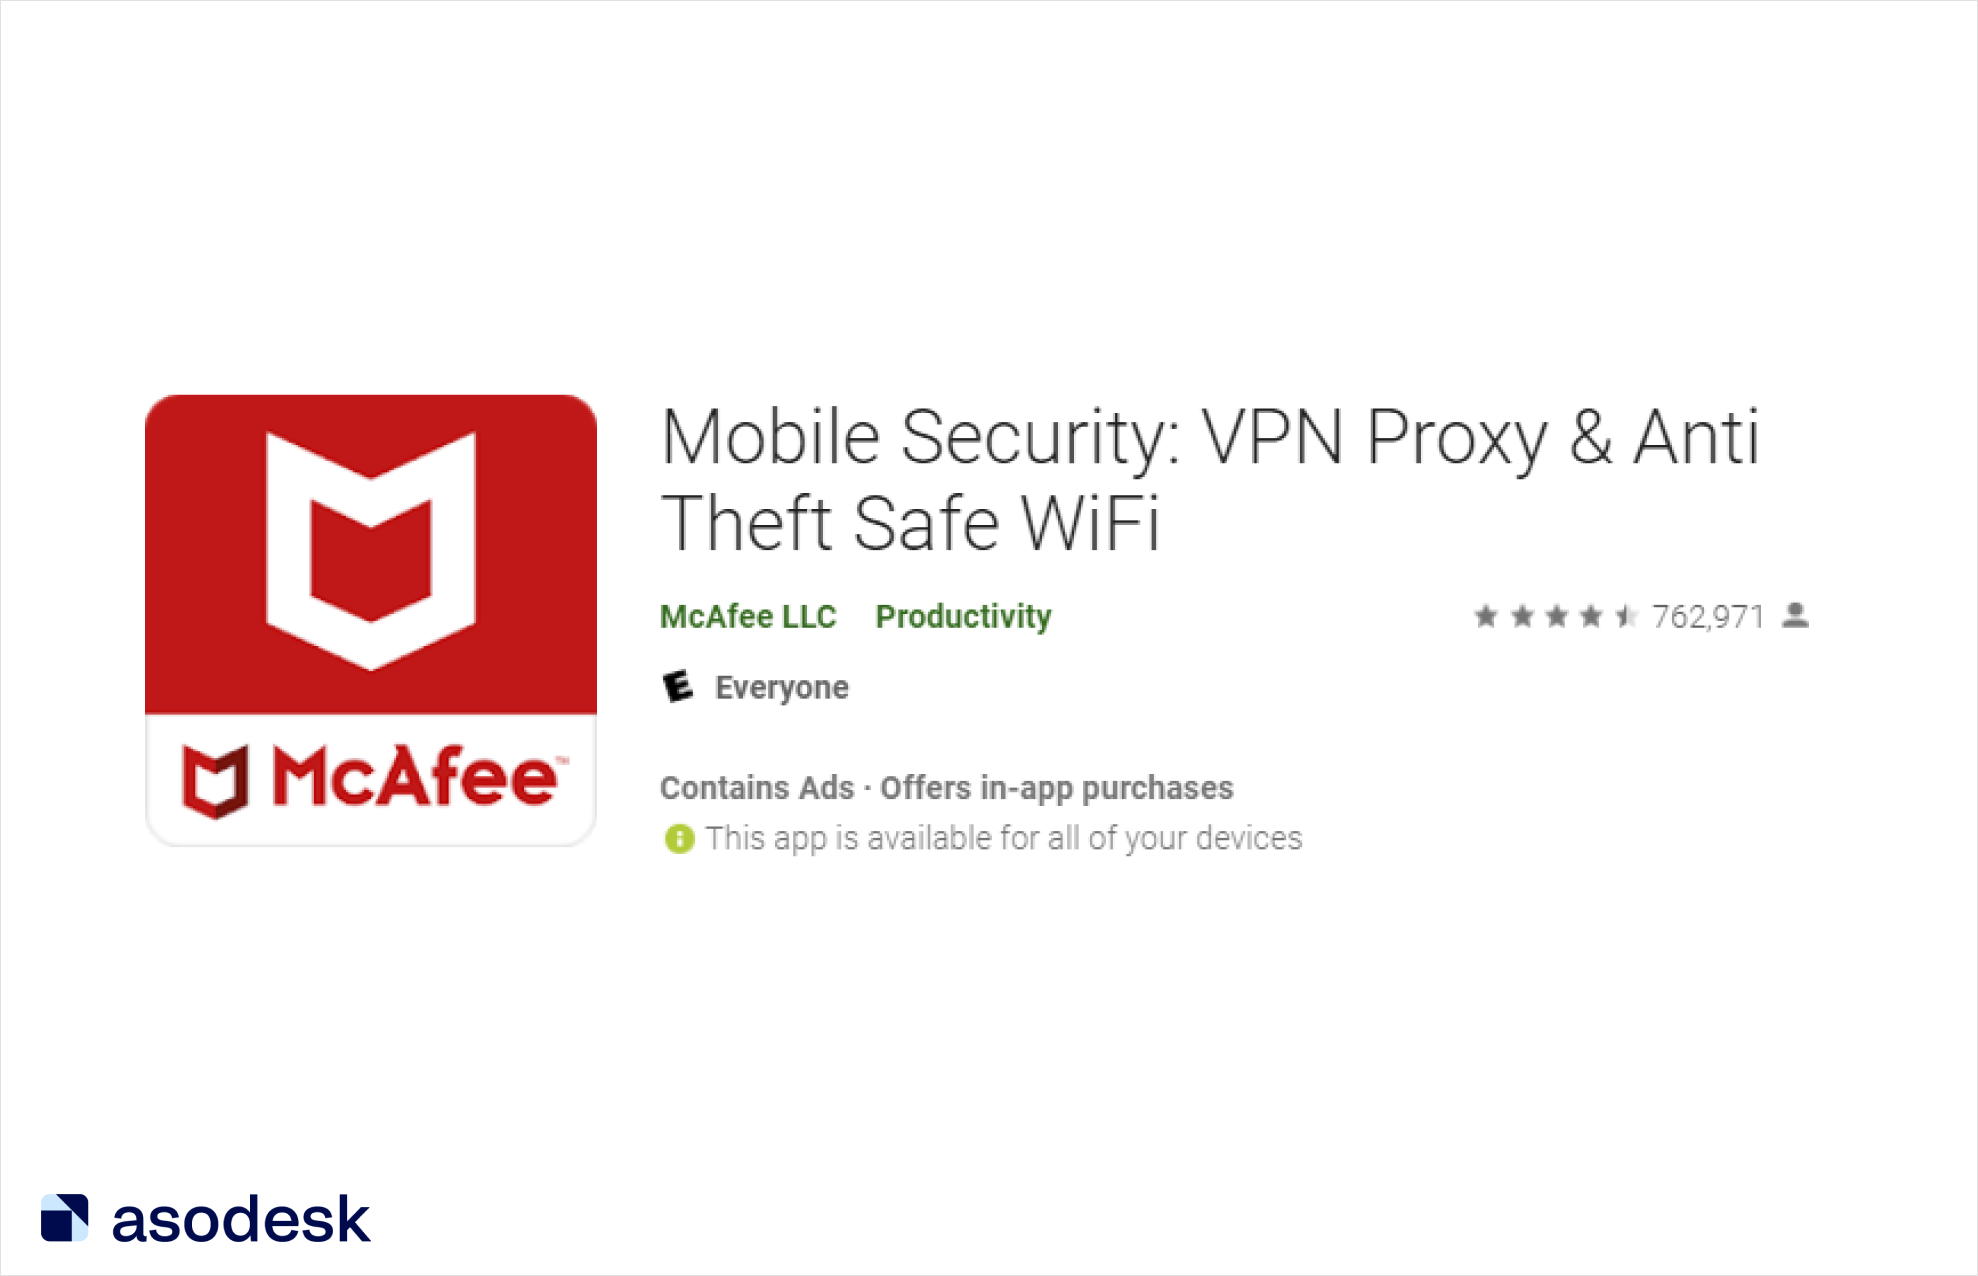 """McAfee brand name was placed on the icon while the keywords """"VPN"""" and """"Safe WiFi"""" were indicated in the app name"""